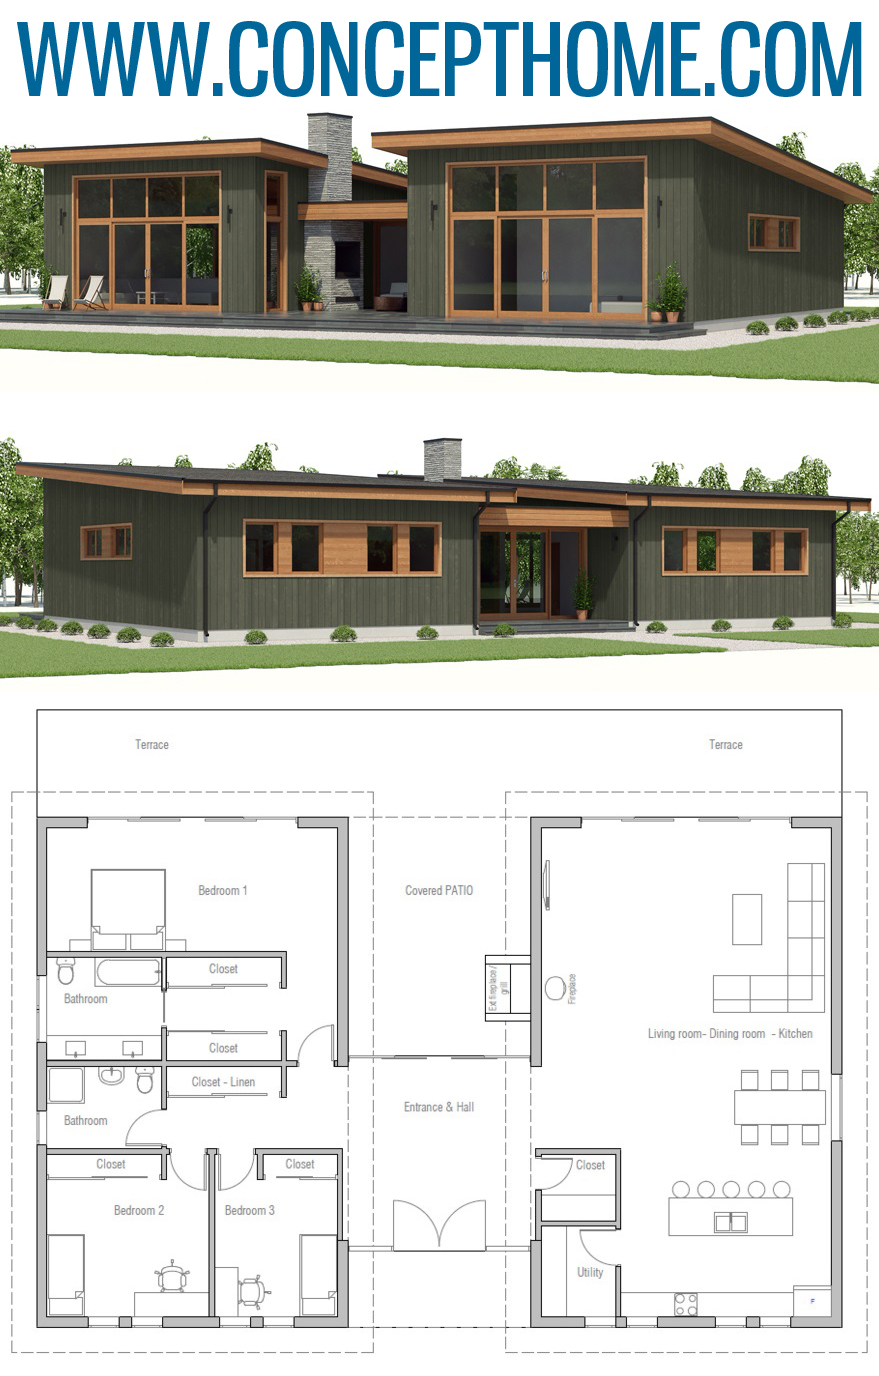 House Plan Ch411 In 2020 Small Modern House Plans New House Plans House Exterior